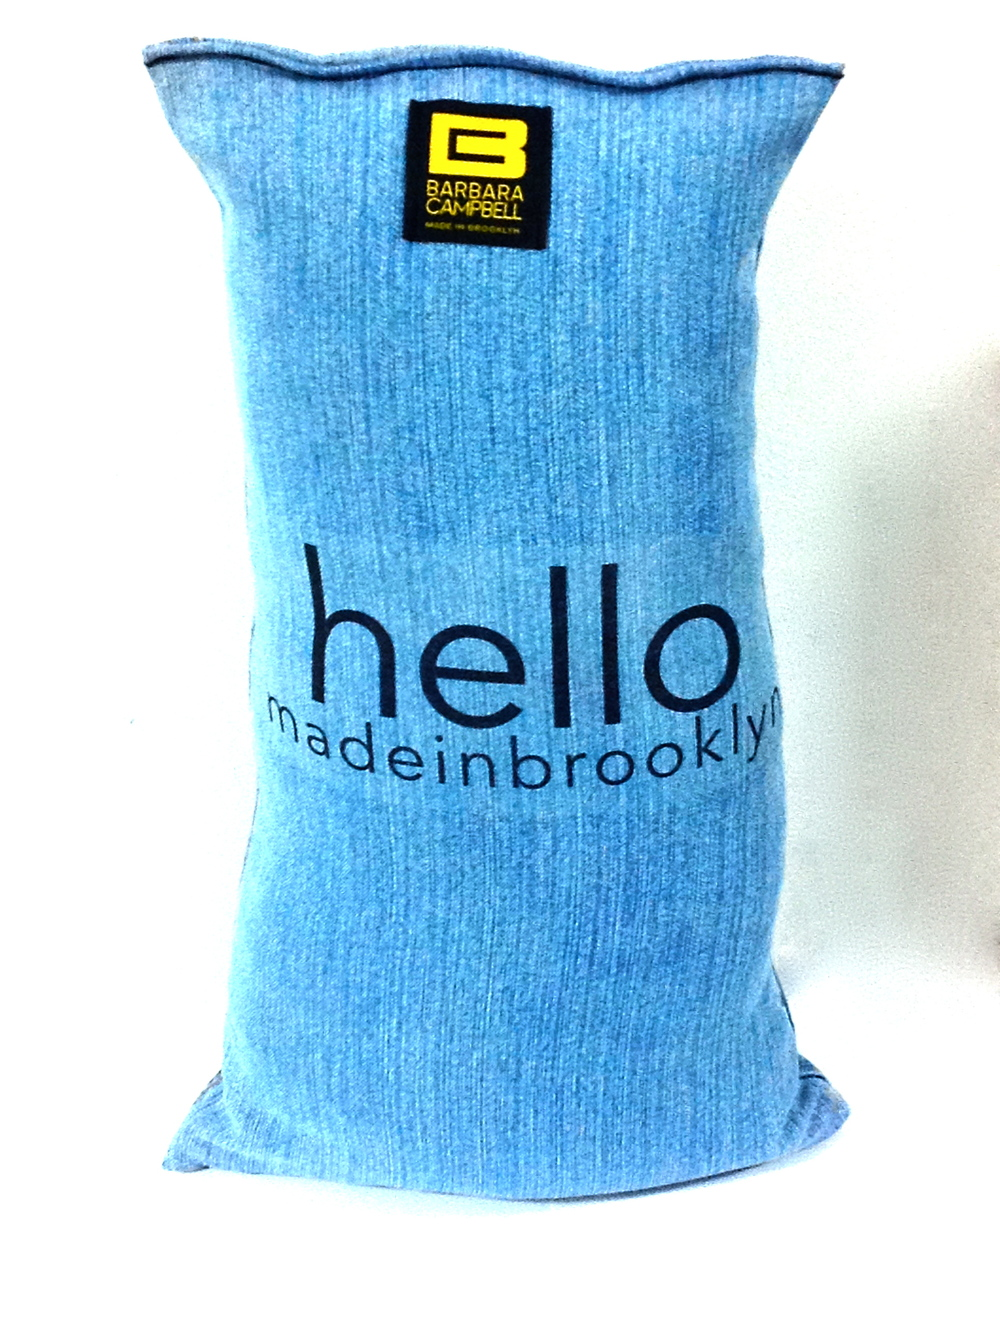 Barbara Campbell Accessories LLC ™ : Manufactures © hellomadeinbrooklyn ™ Products  hello made in brooklyn ™ Pillow: handbags fashion jewelry hair accessories: handmade denim pillow products